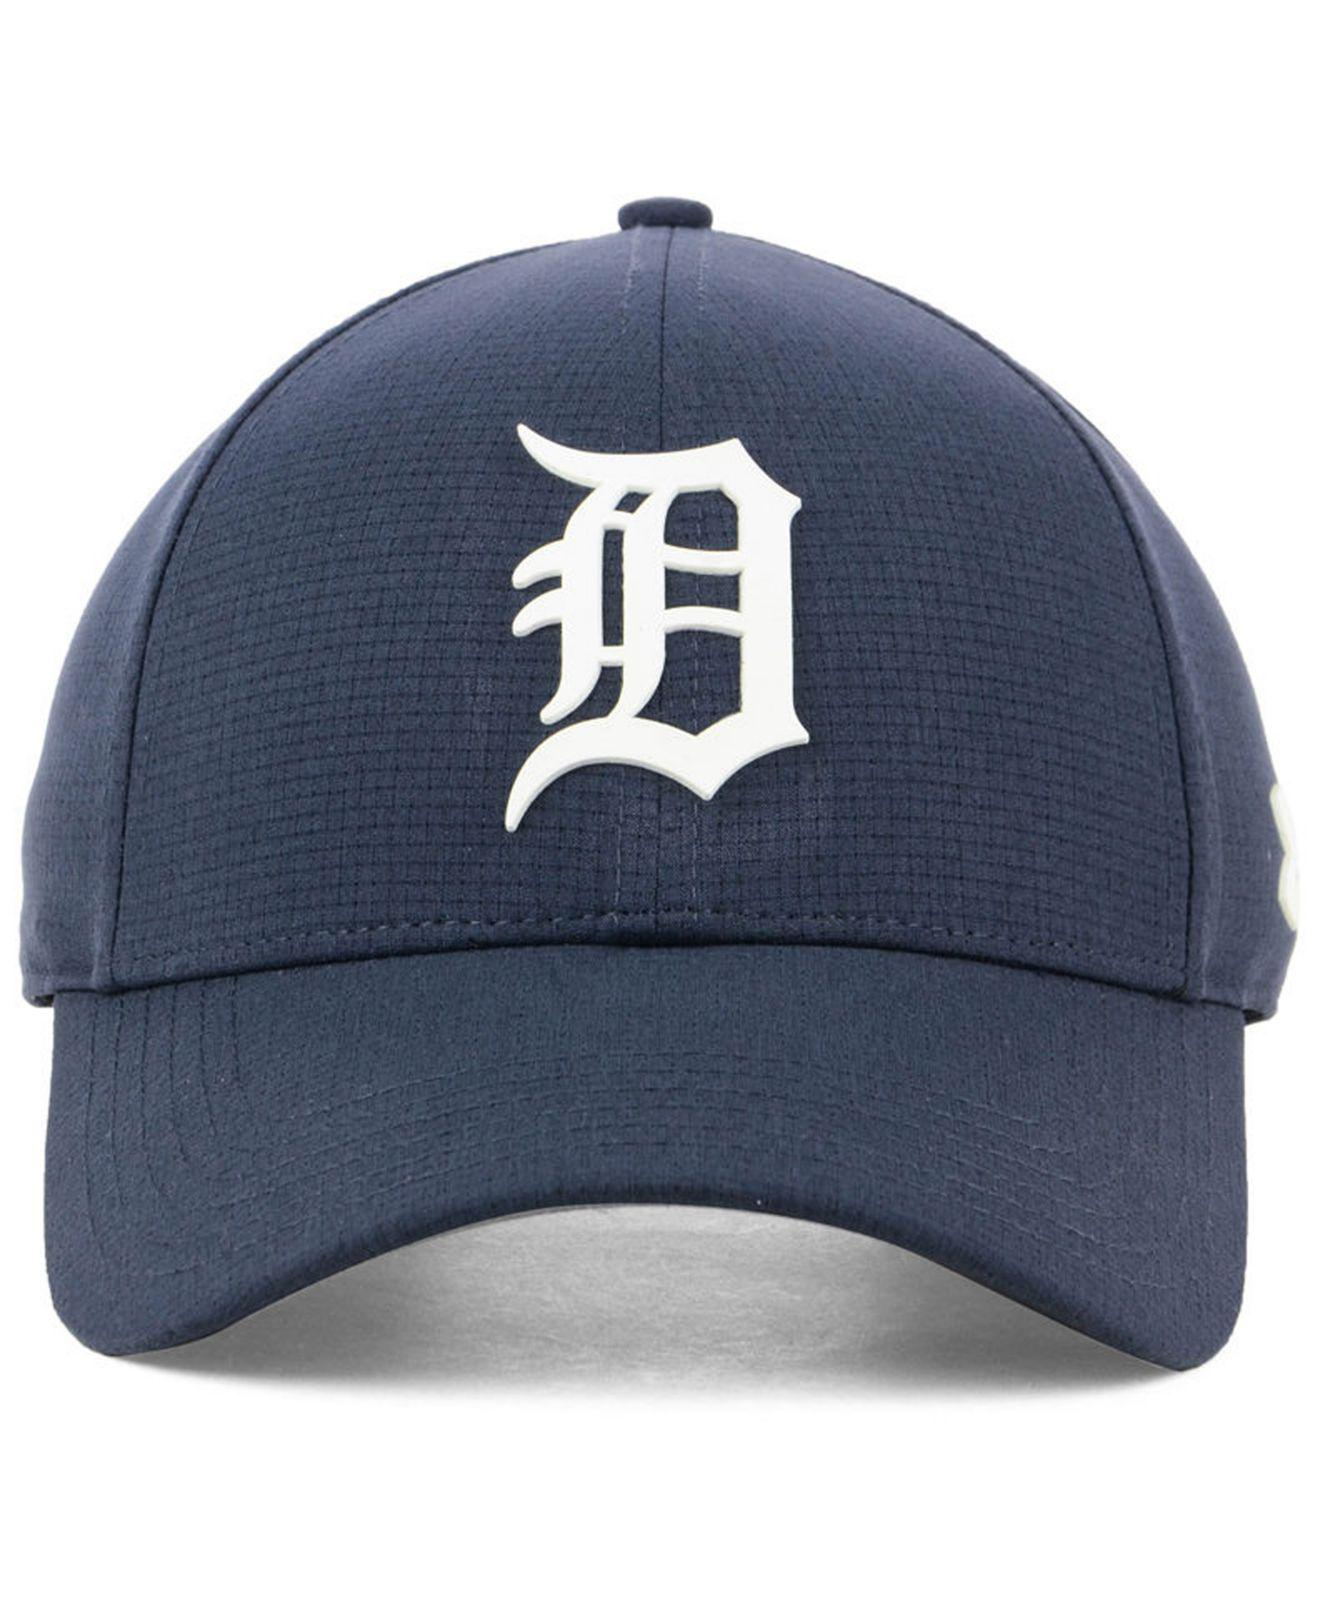 5f98cdd94959b ... sale lyst under armour detroit tigers driver cap in blue for men 96186  3bf97